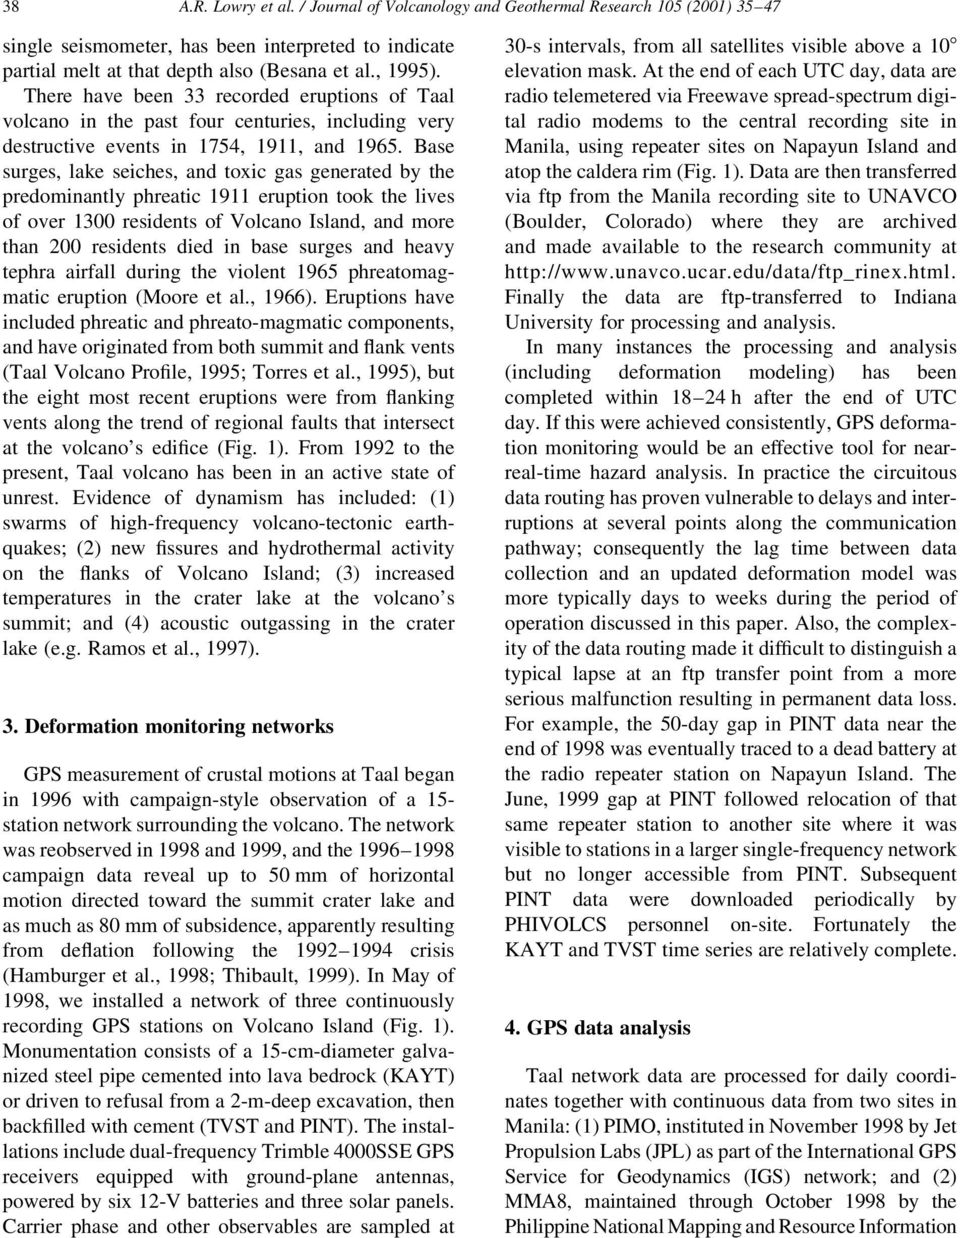 Base surges, lake seiches, and toxic gas generated by the predominantly phreatic 1911 eruption took the lives of over 1300 residents of Volcano Island, and more than 200 residents died in base surges